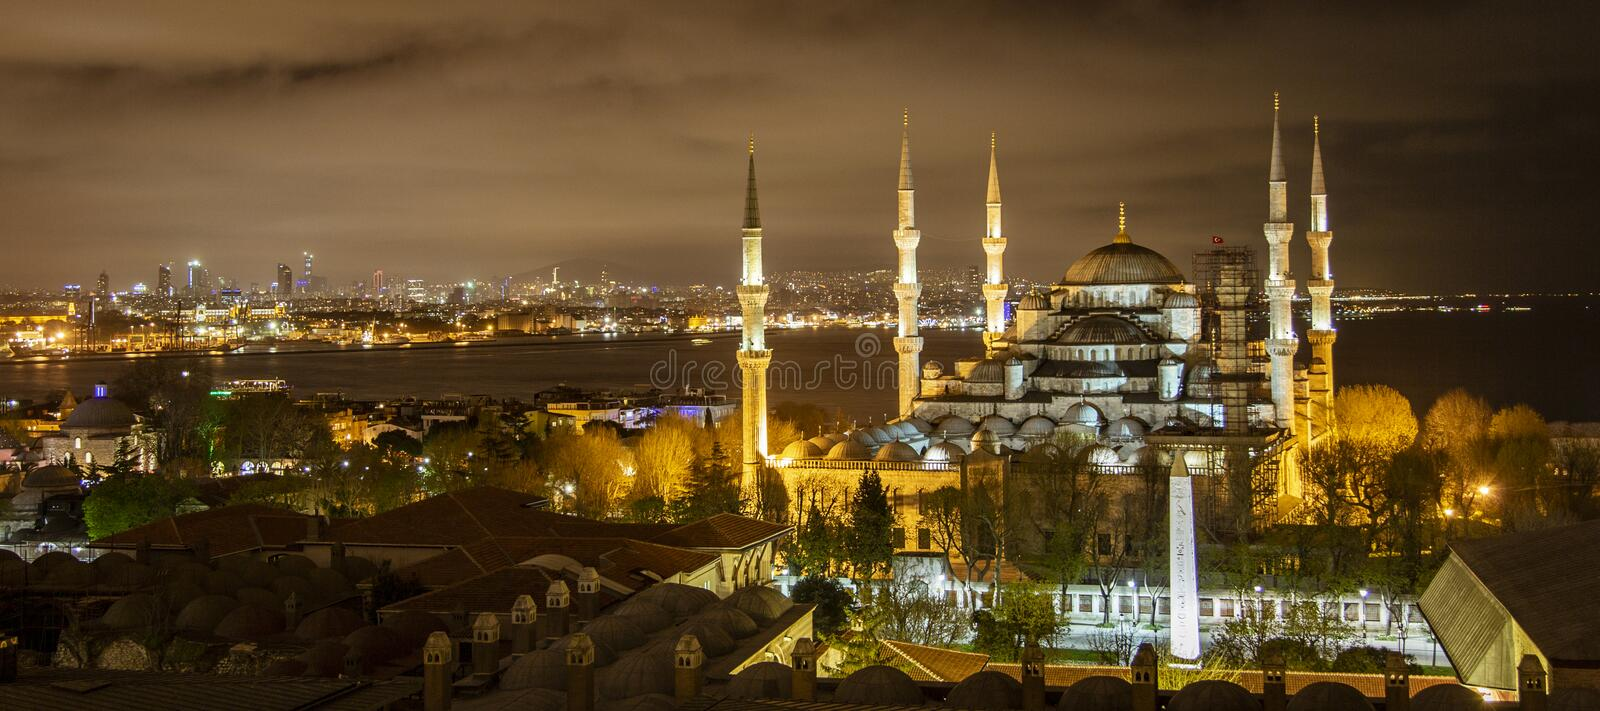 Blue Mosque in Istanbul at night stock photo